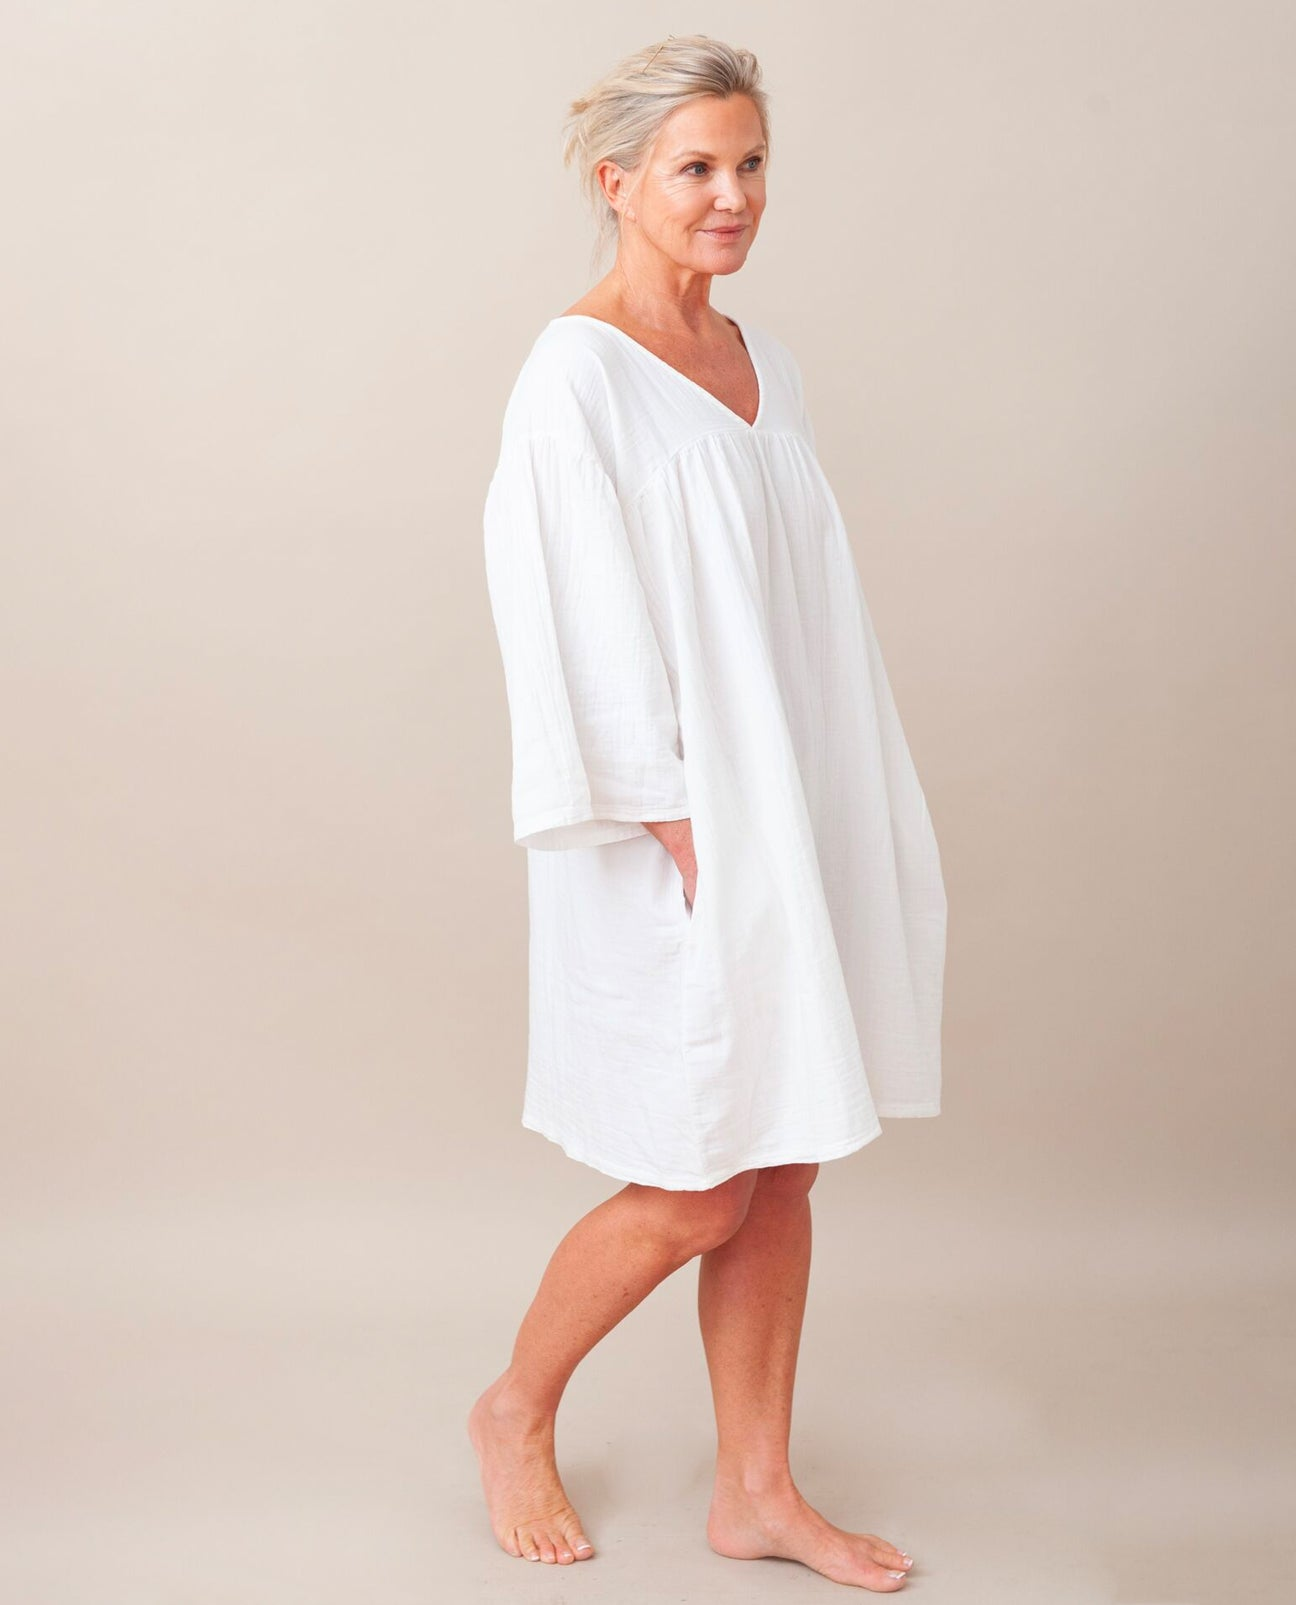 DYLLA Organic Cotton Dress In Off White